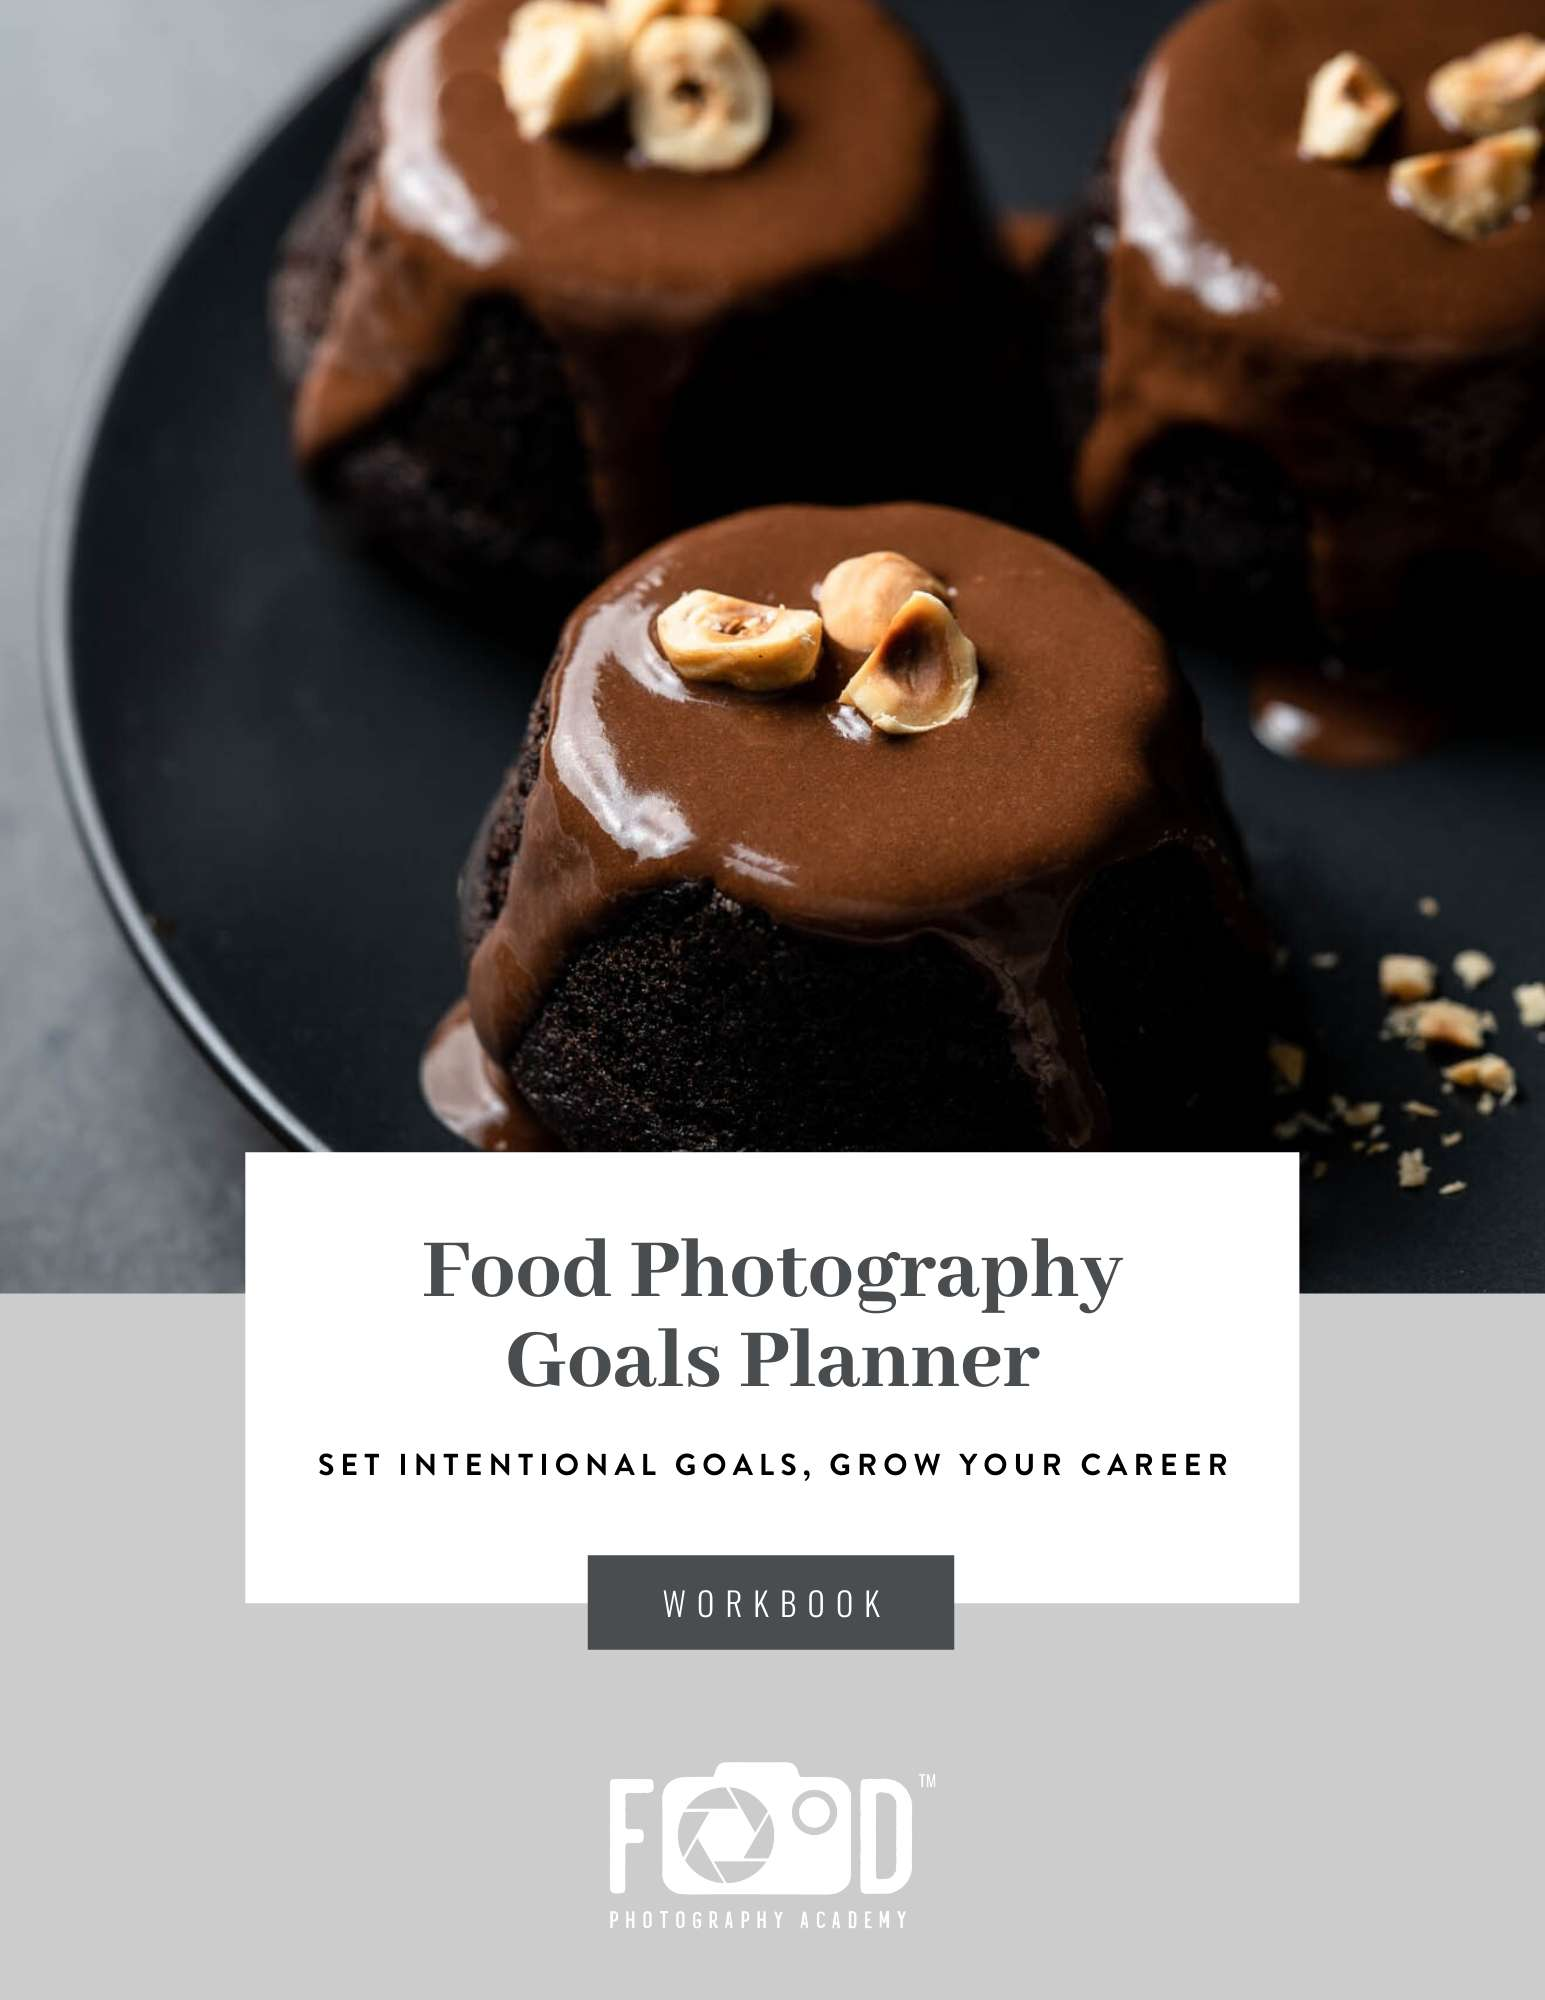 Food Photography Goal Setting Workbook